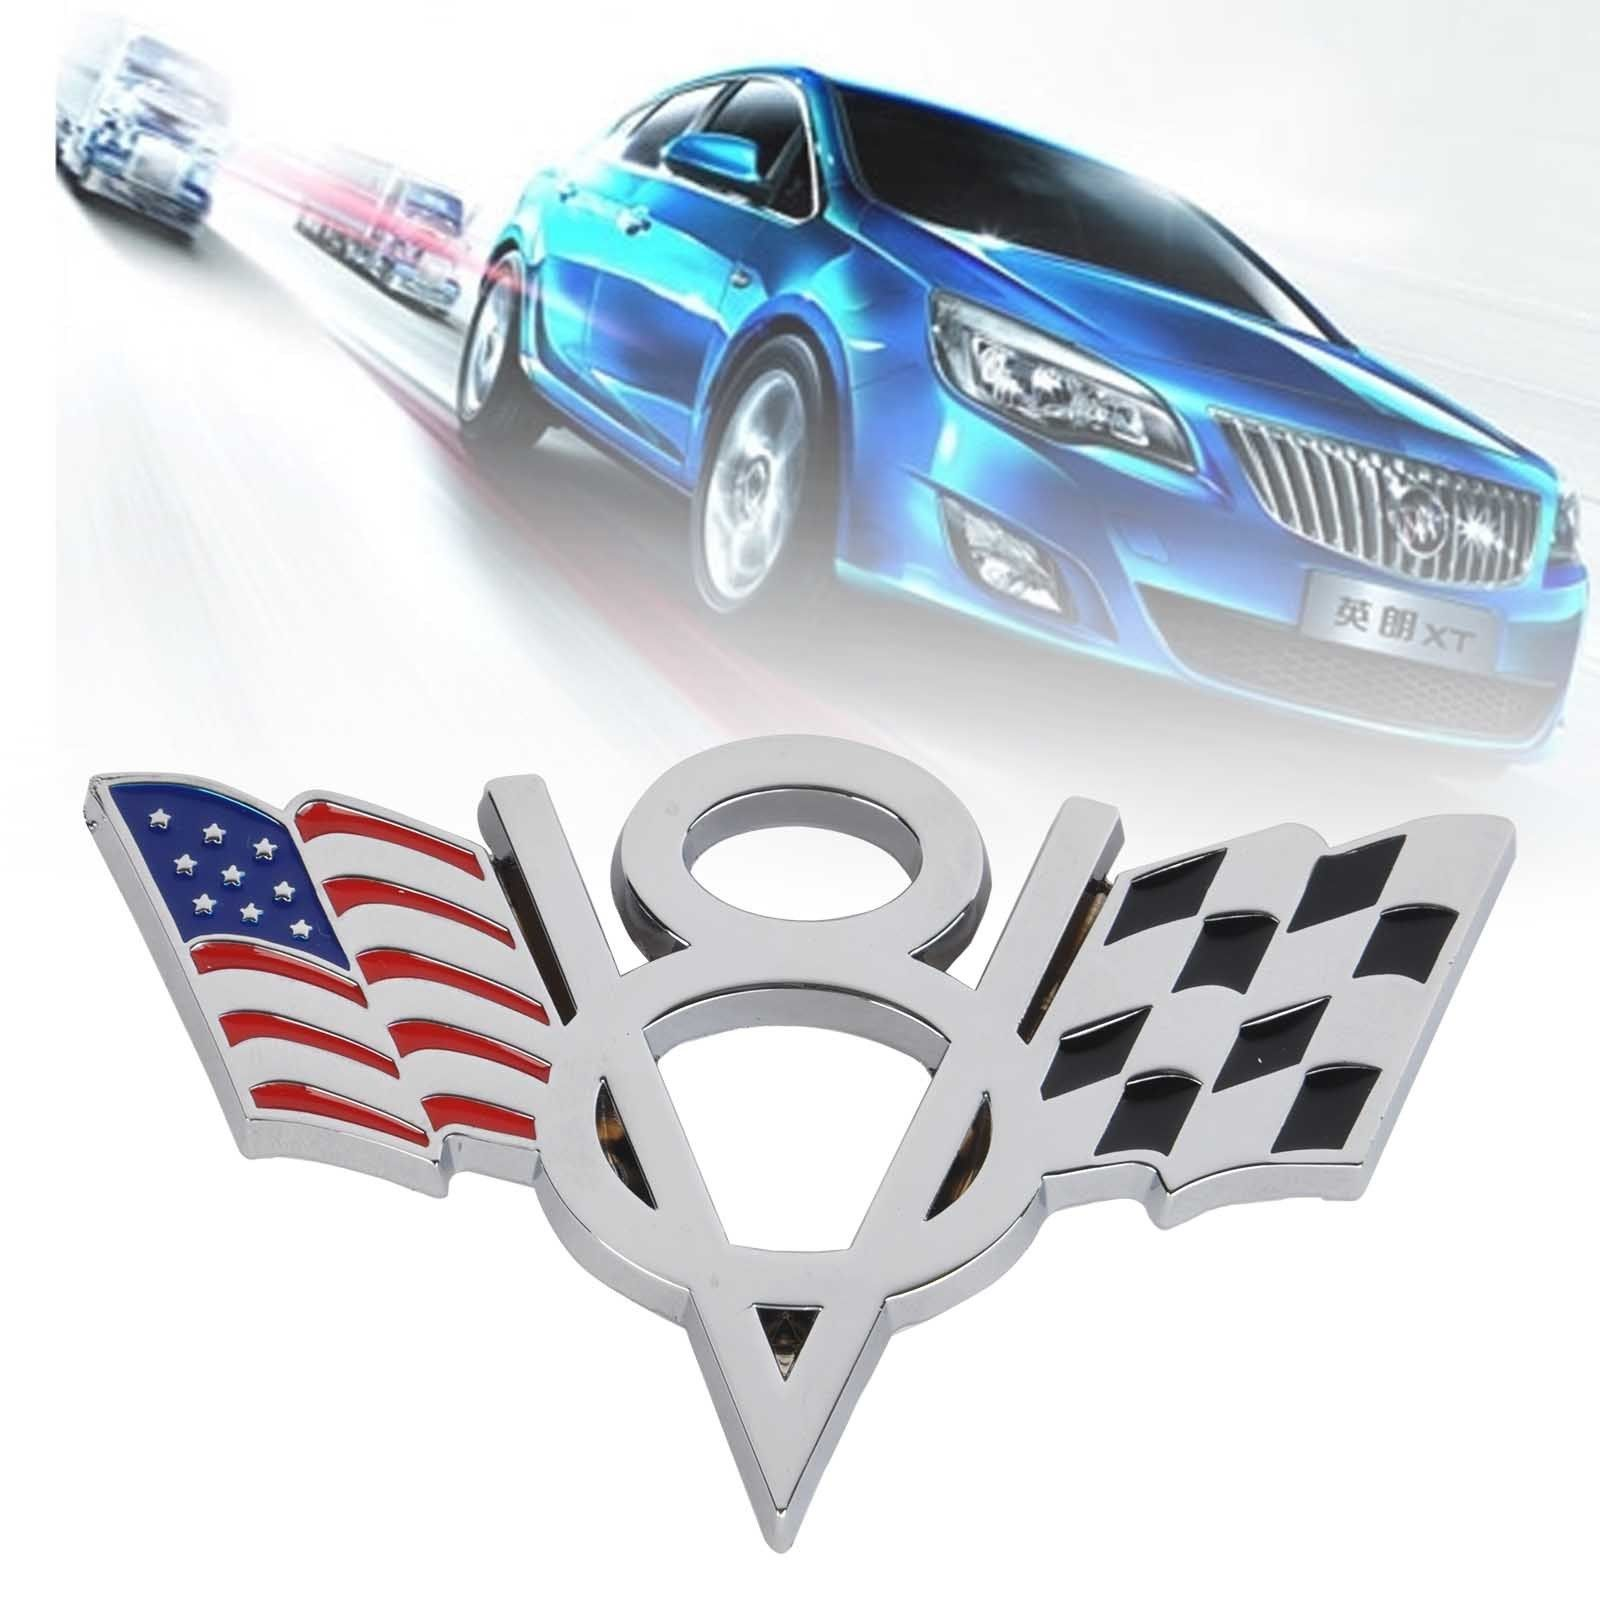 New Metal V8 American Flag Car Emblem Badge Sticker Decal